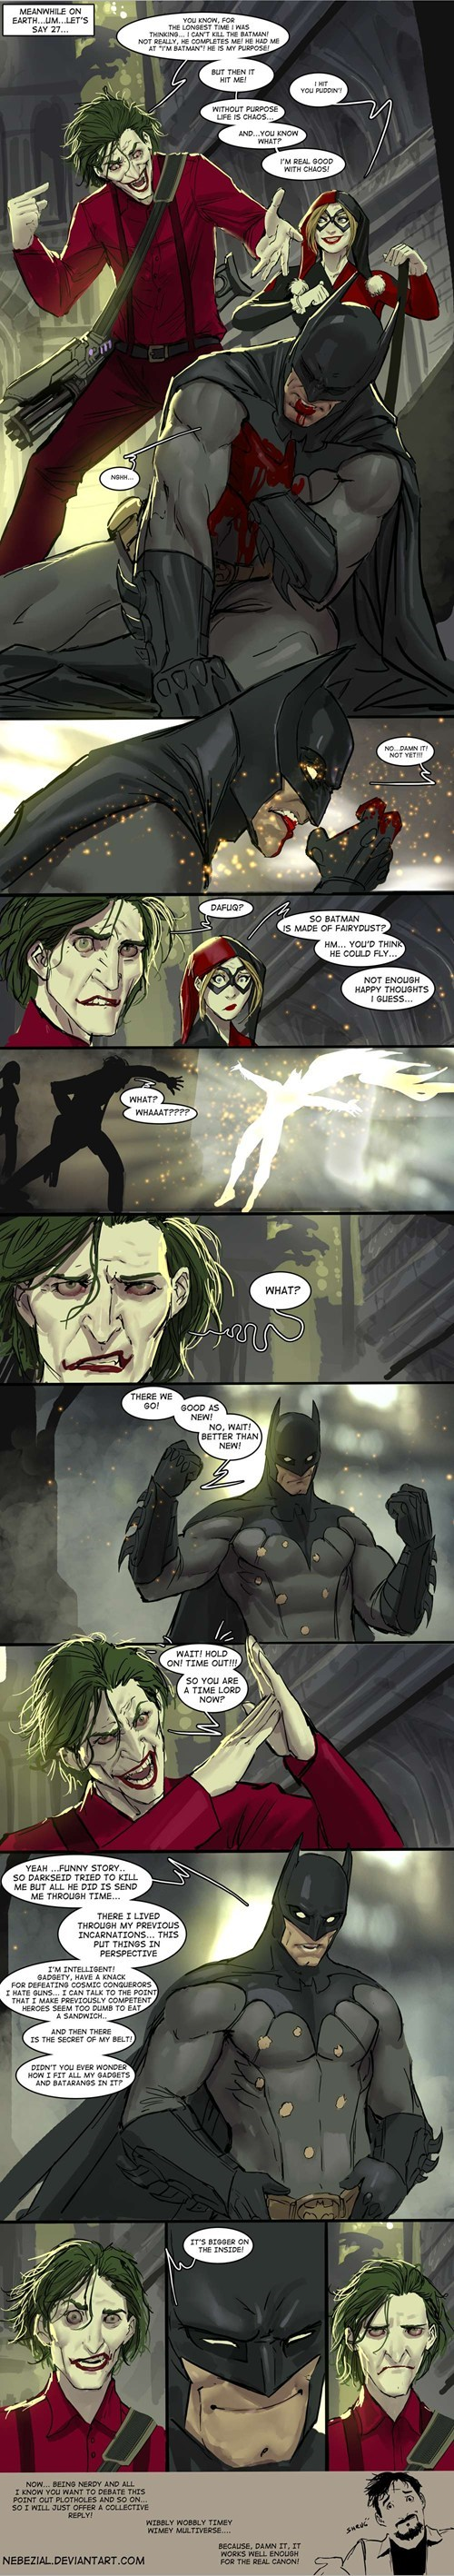 batman doctor who comics Fan Art Time lord - 7969795840